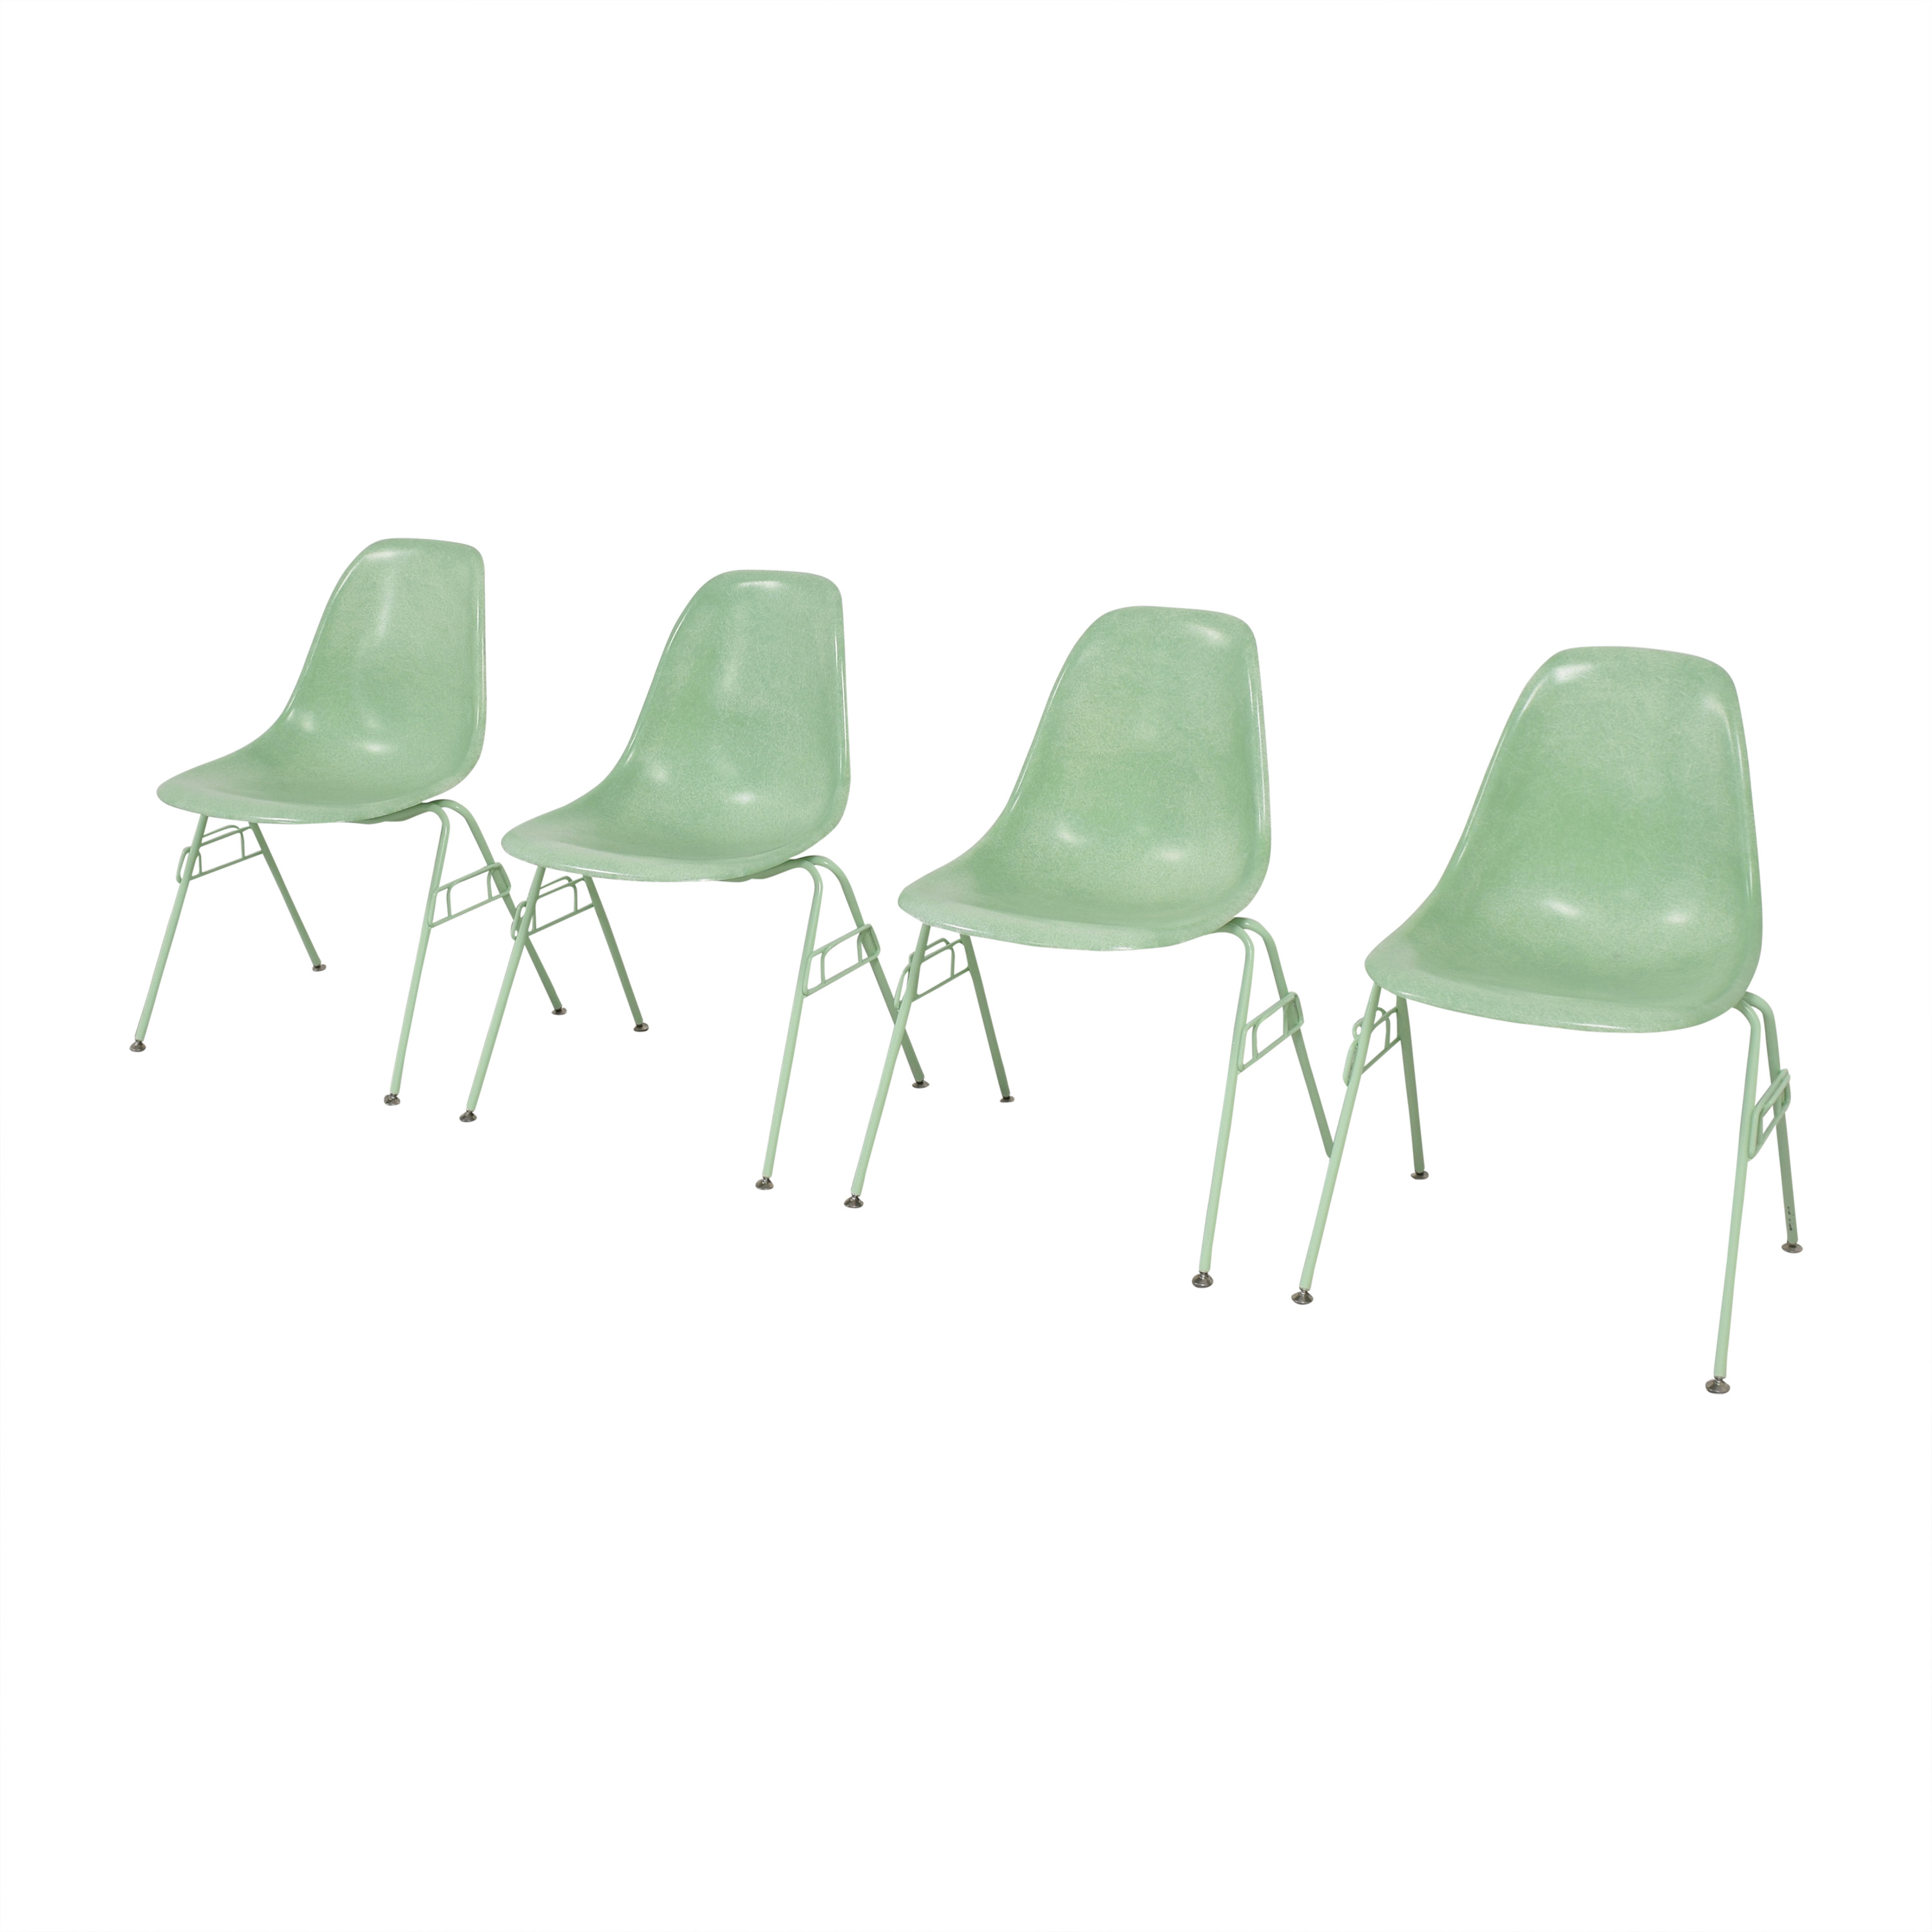 Modernica Case Study Shell Stacking Side Dining Chairs / Chairs